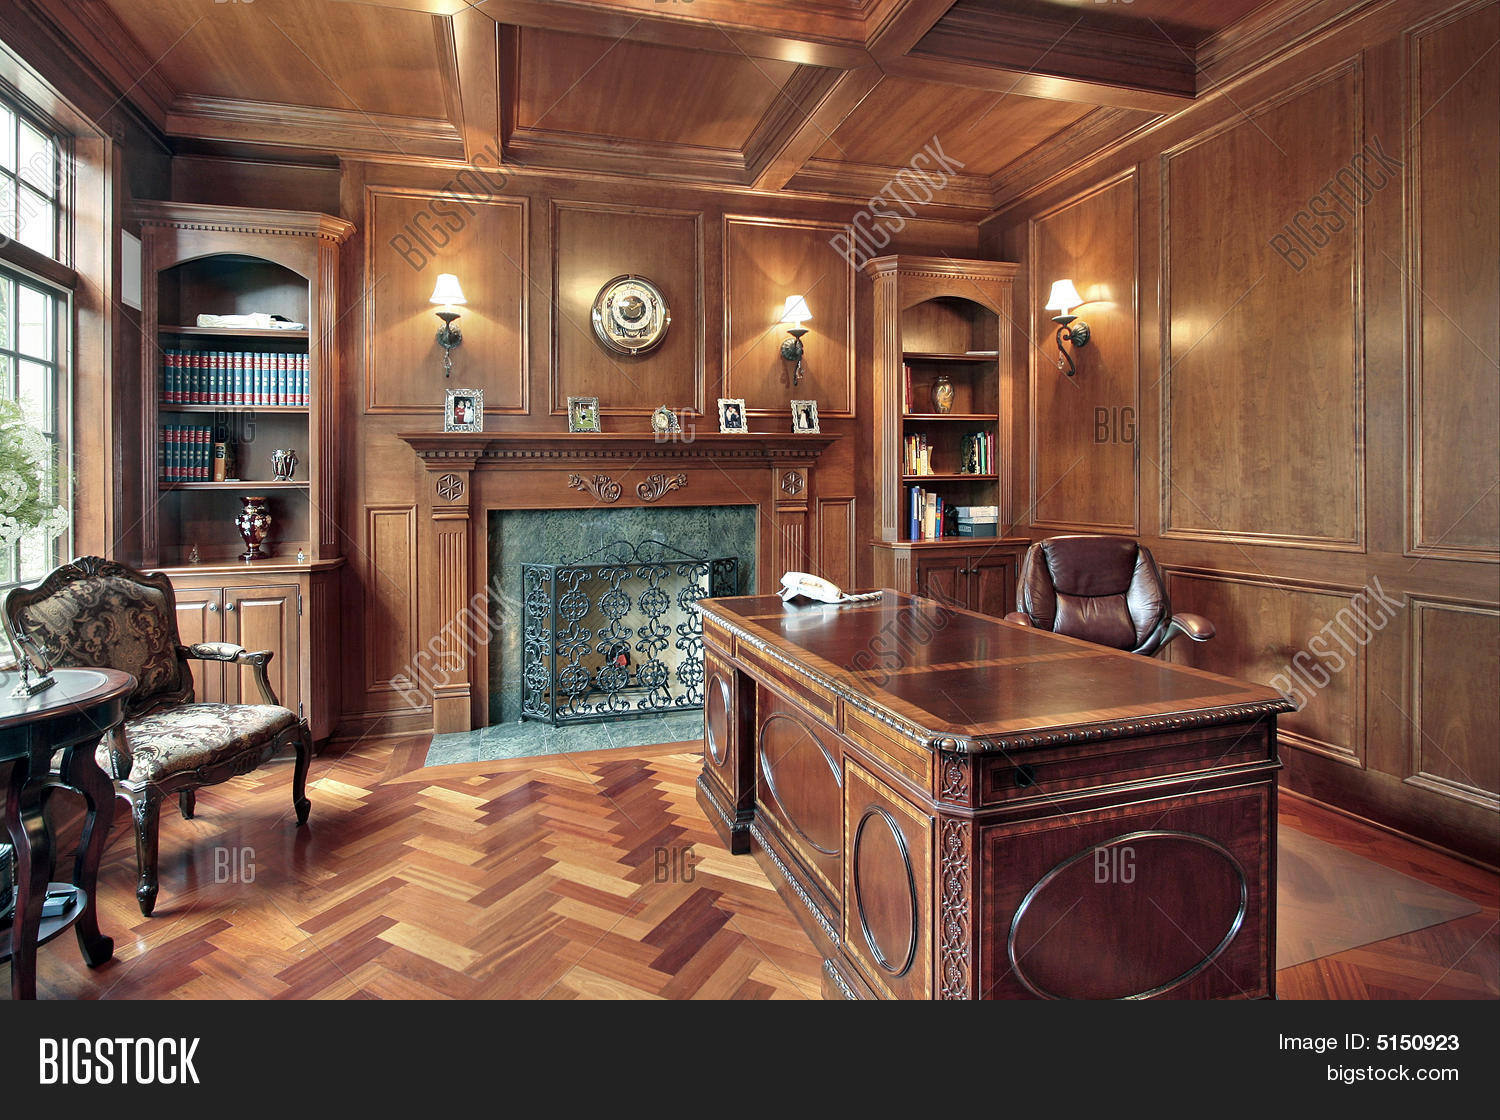 Wood Paneled Office With Fireplace - Wood Paneled Office With Fireplace Stock Photo & Stock Images